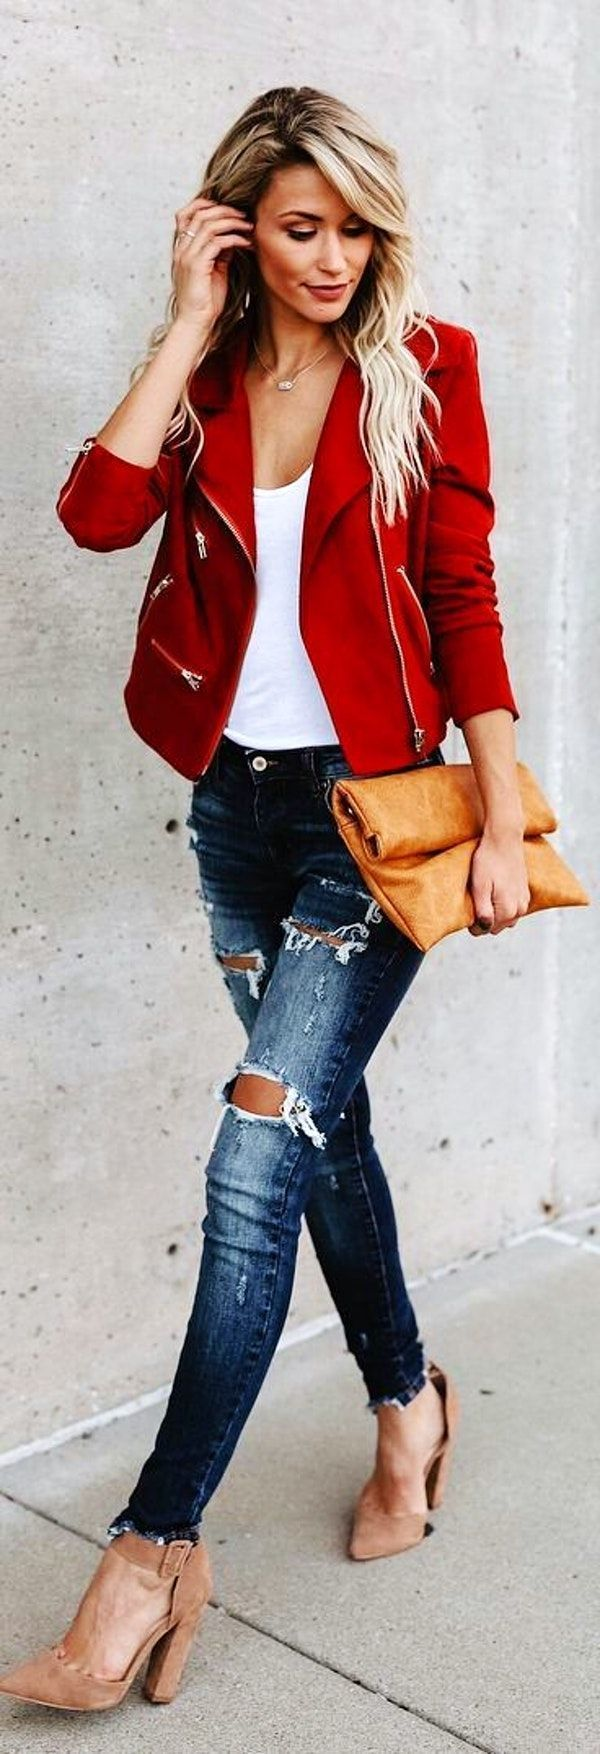 #winter #outfits red zip-up coat and distressed blue fitted jeans #winteroutfits #fitnessoutfits